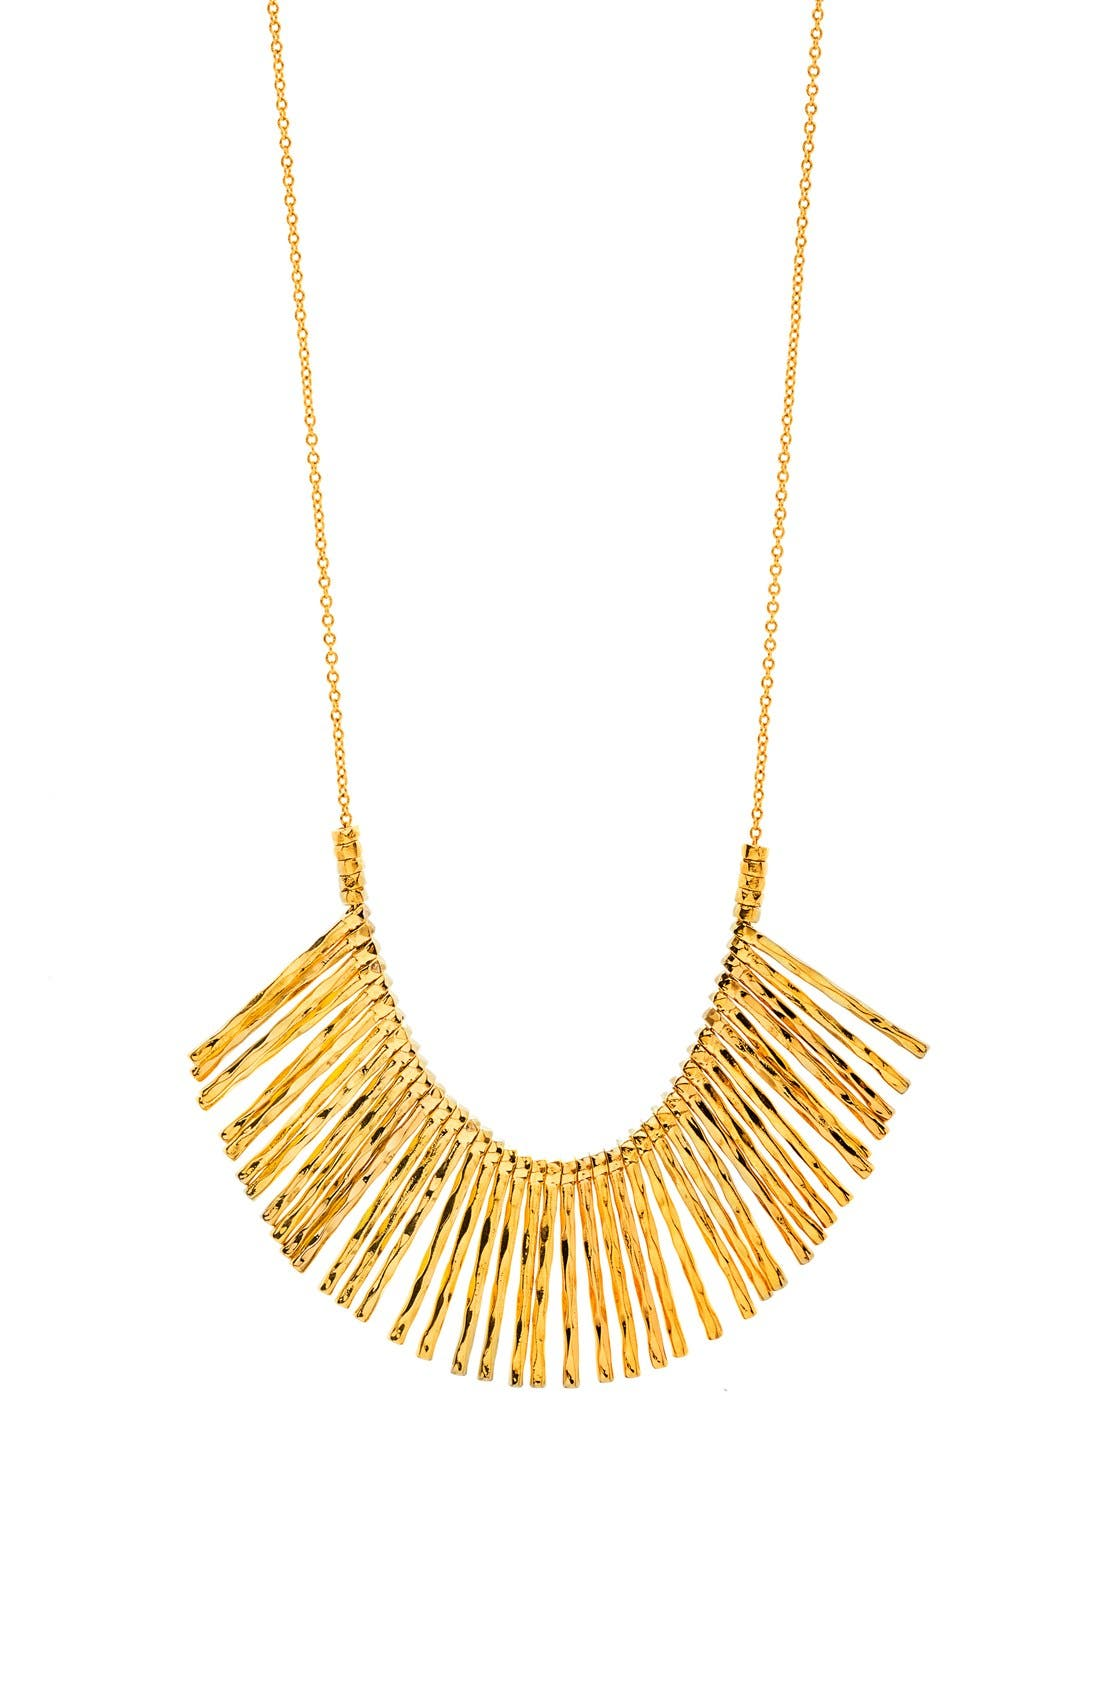 gorjana 'Kylie' Fan Necklace